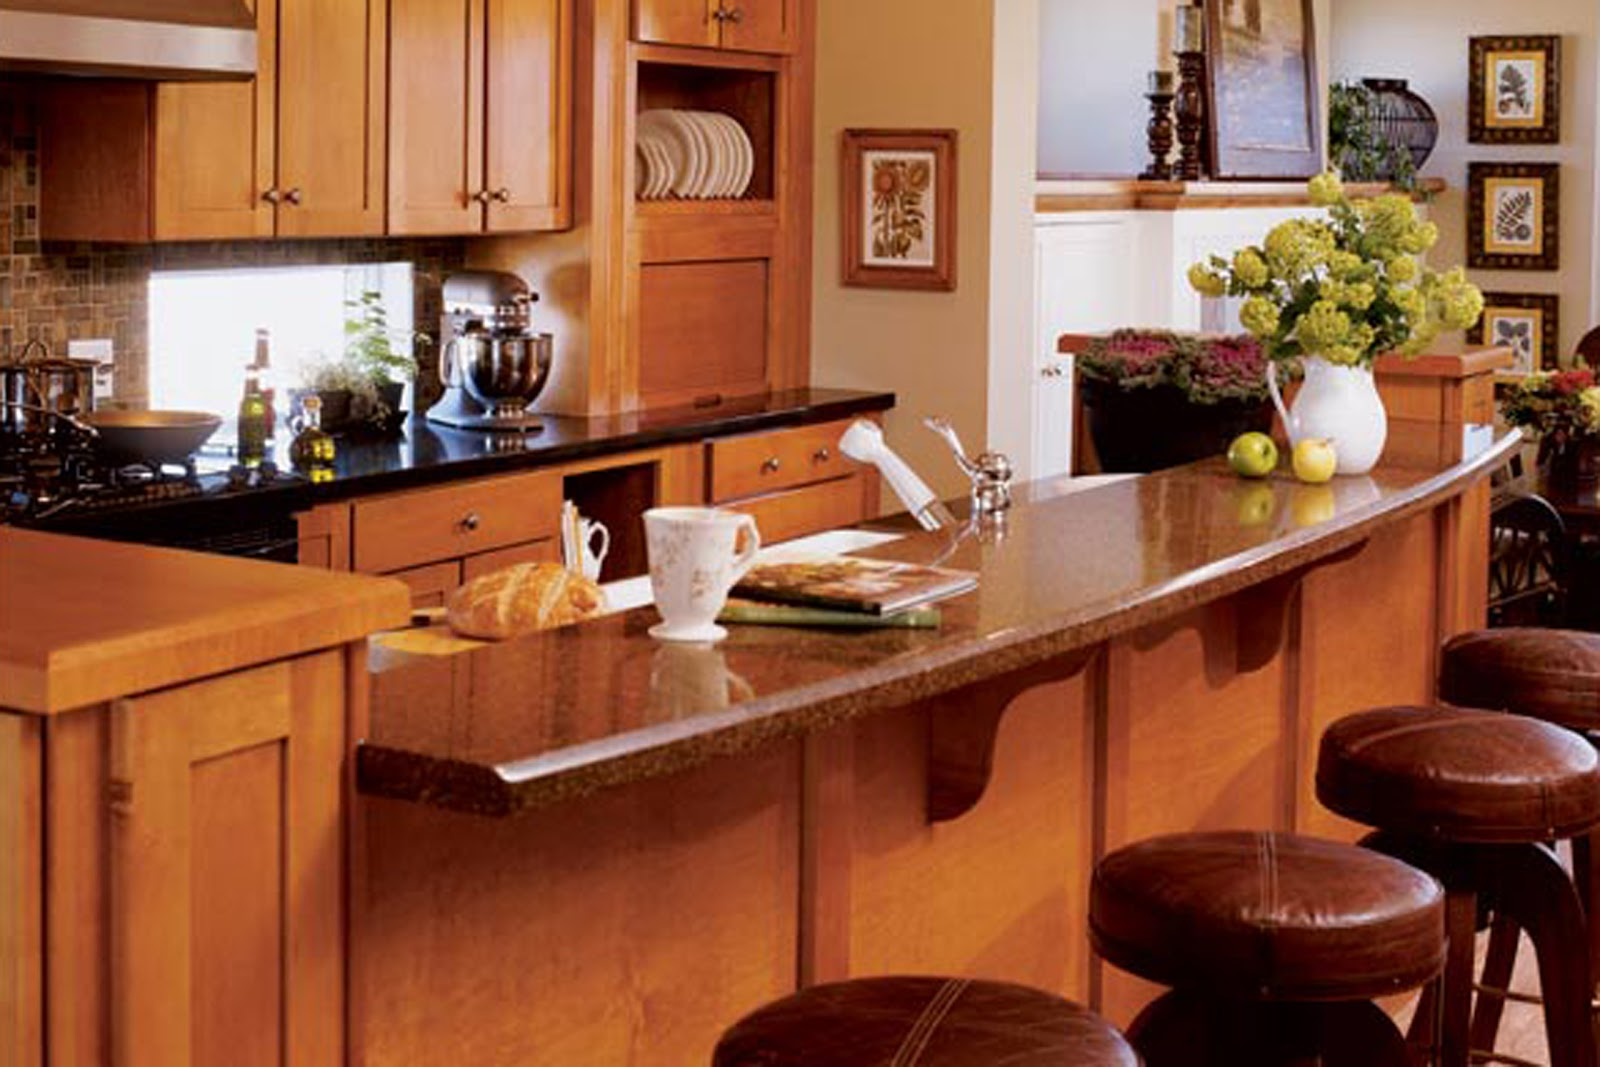 Kitchen Island Shapes kitchen island design kitchen design i shape india for small space